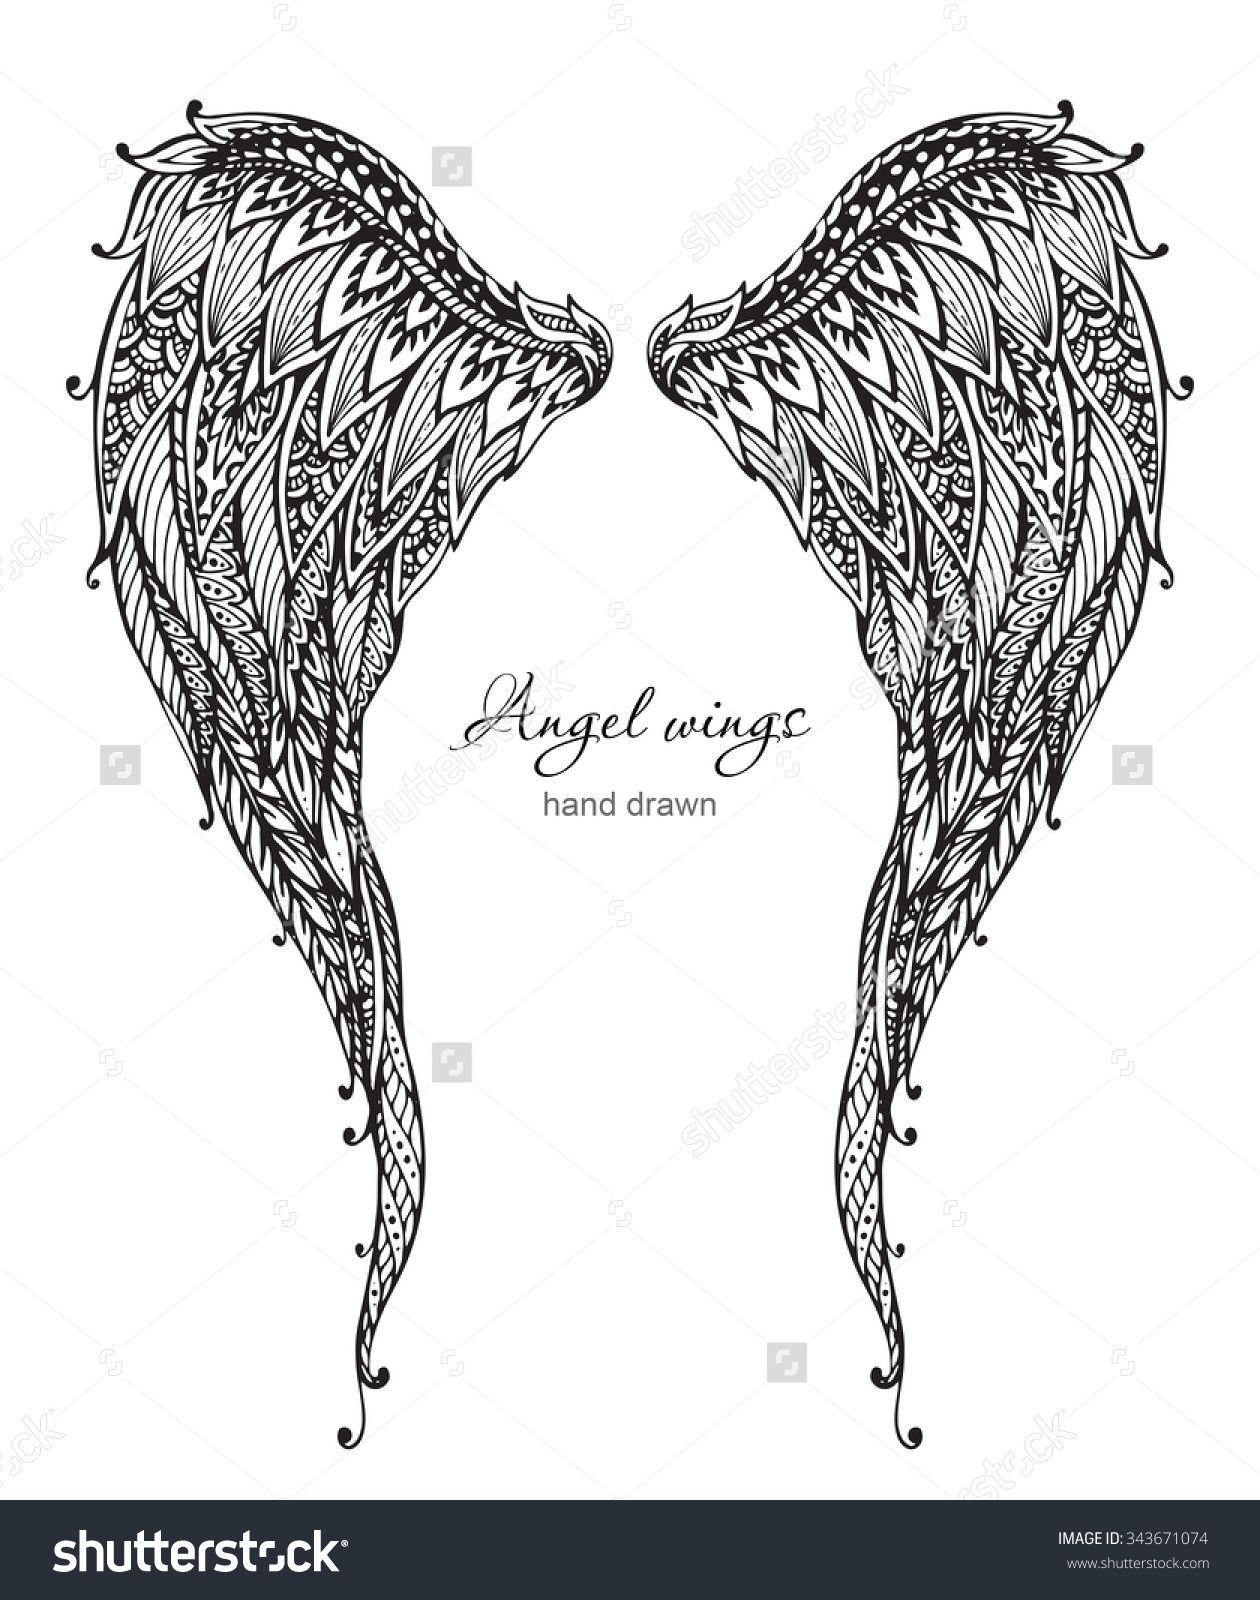 0e951fdcd Vector Hand Drawn Ornate Angel Wings, Zentangle Style. Doodle ...